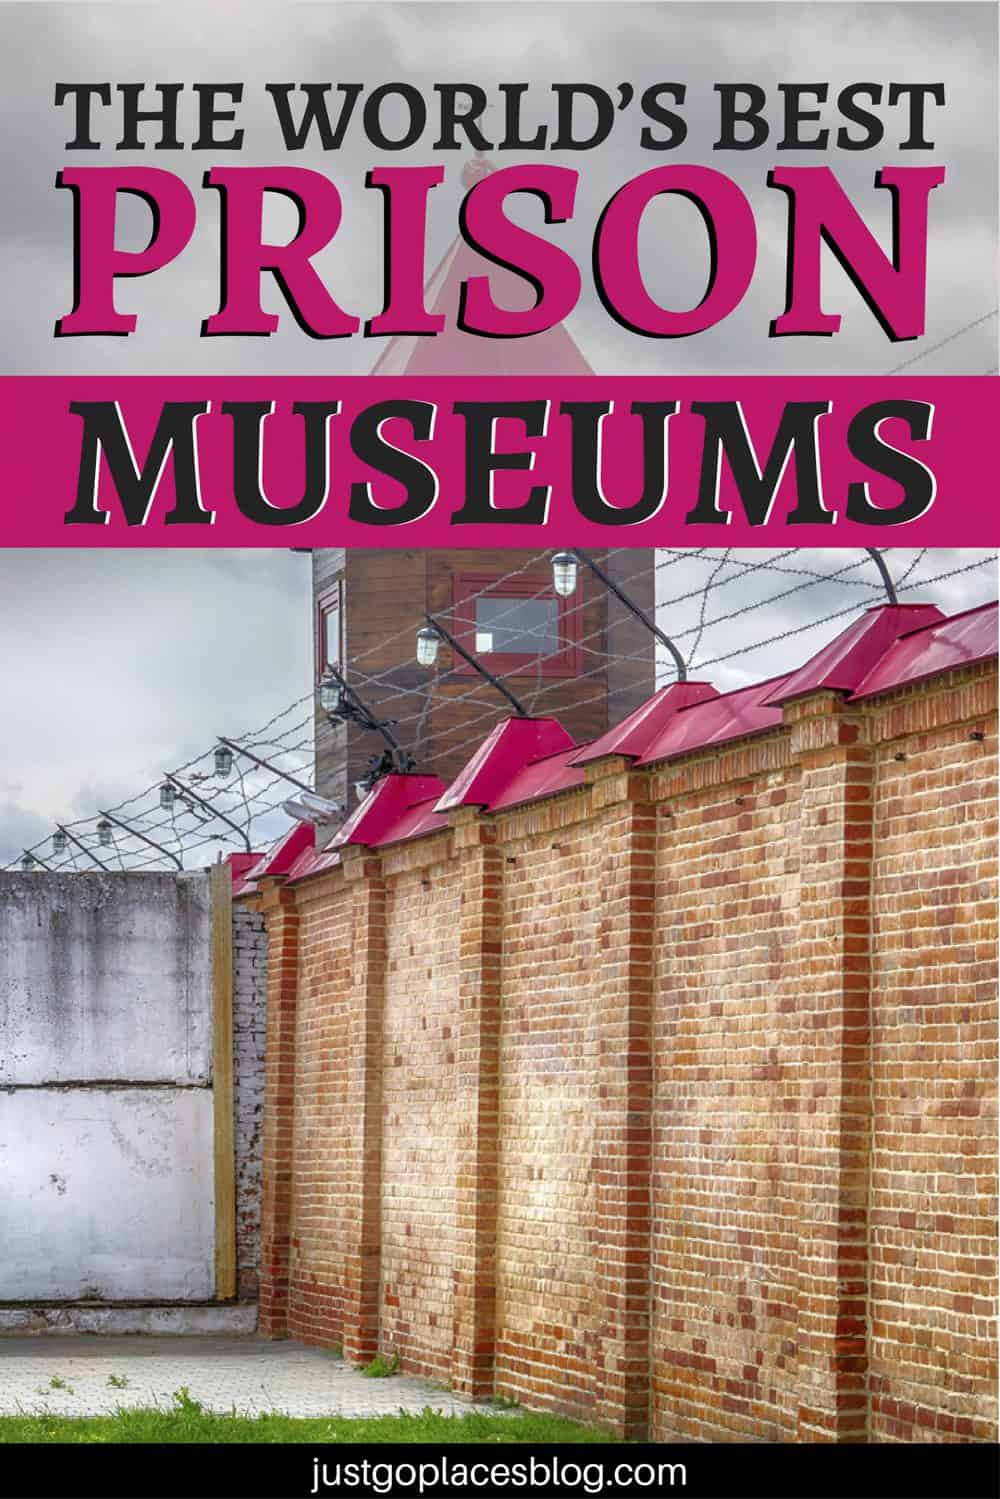 The world's best prison museums in the world